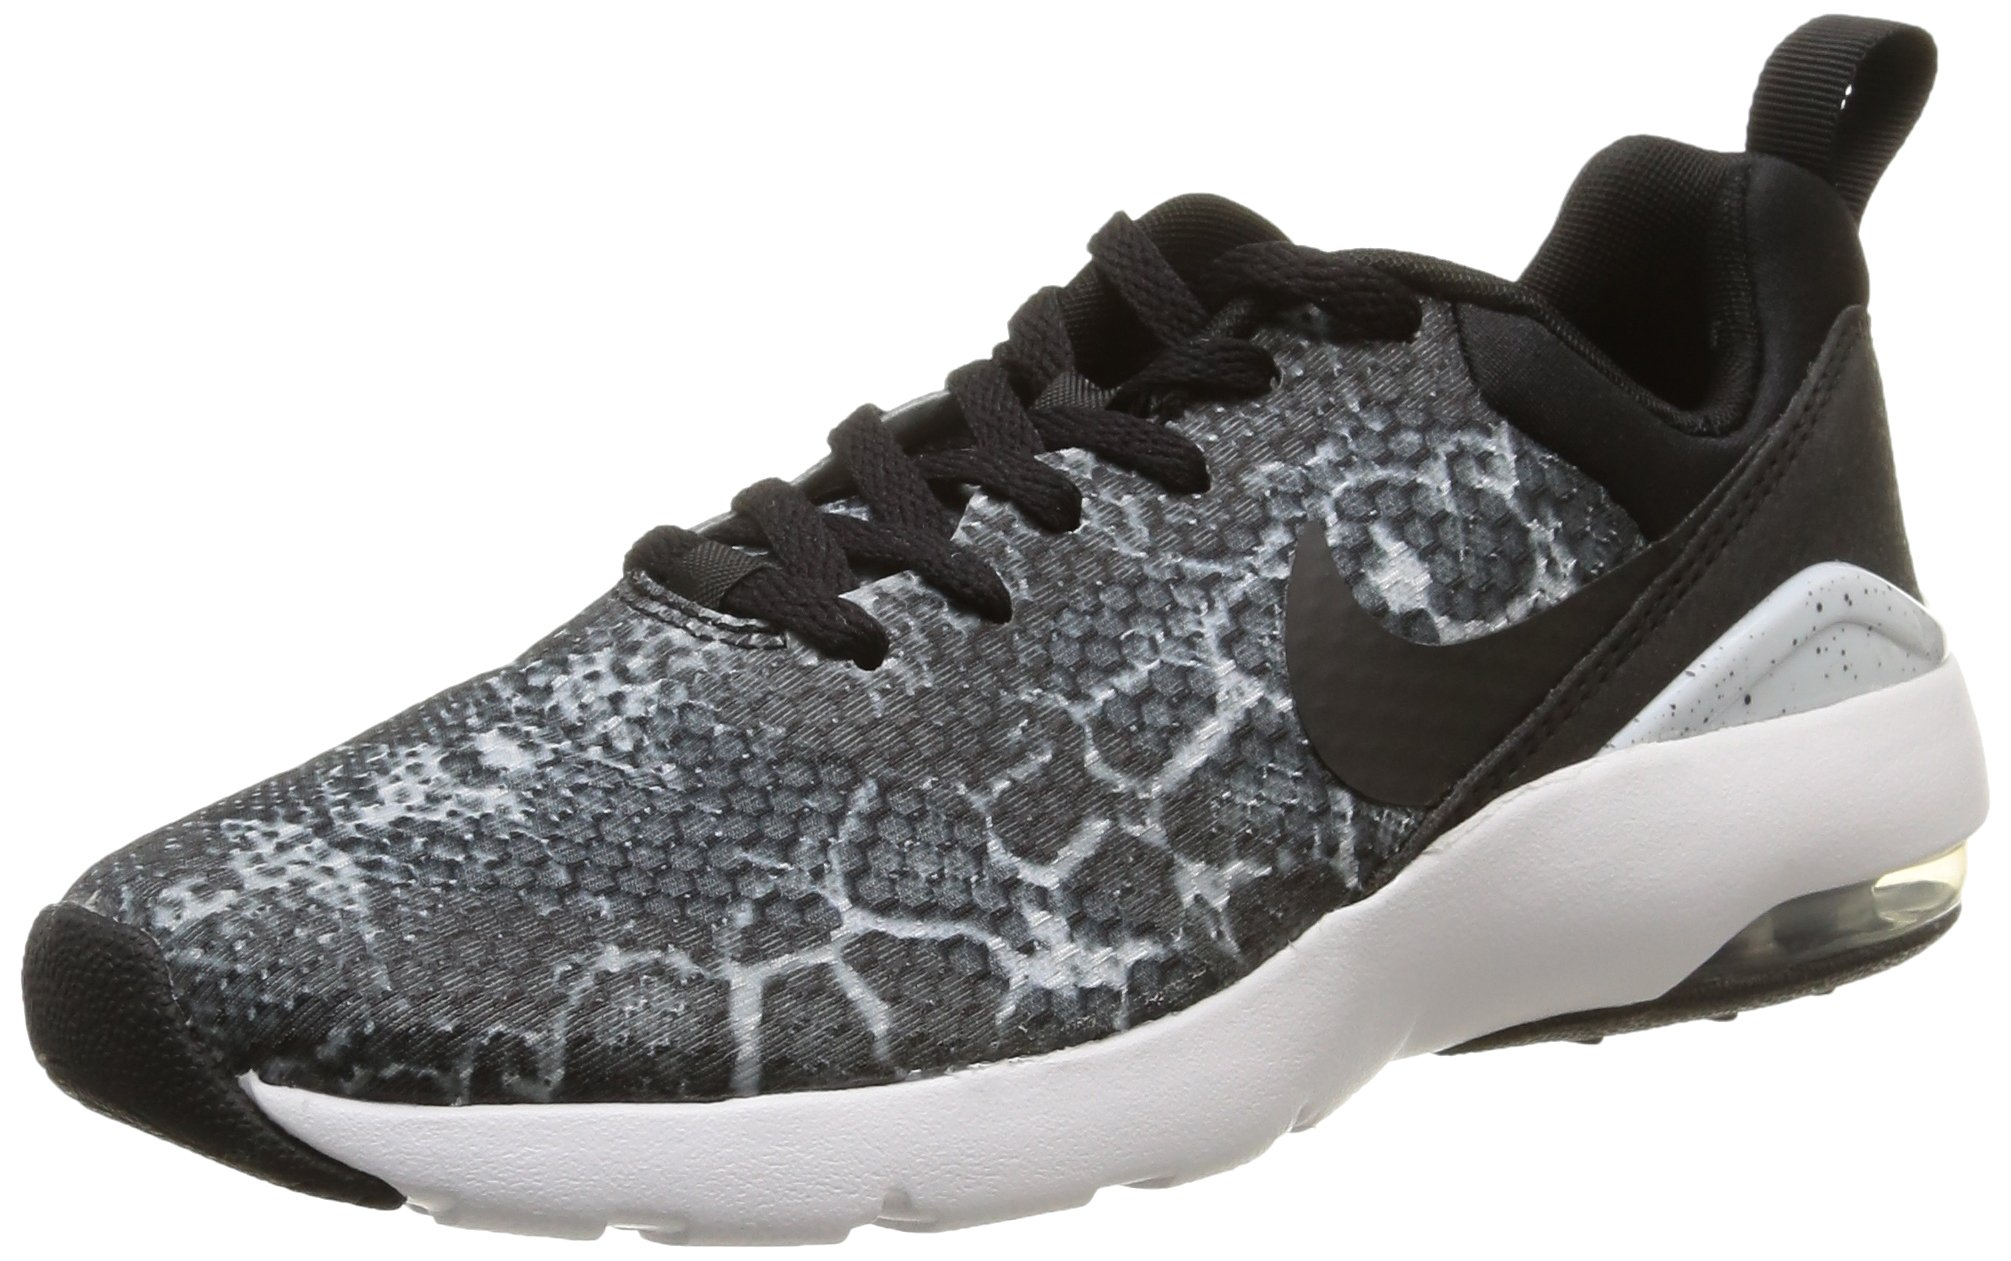 classic closer at stable quality Nike Womens Wmns Air Max Siren Print, PURE PLATINUM/BLACK-WHITE ...